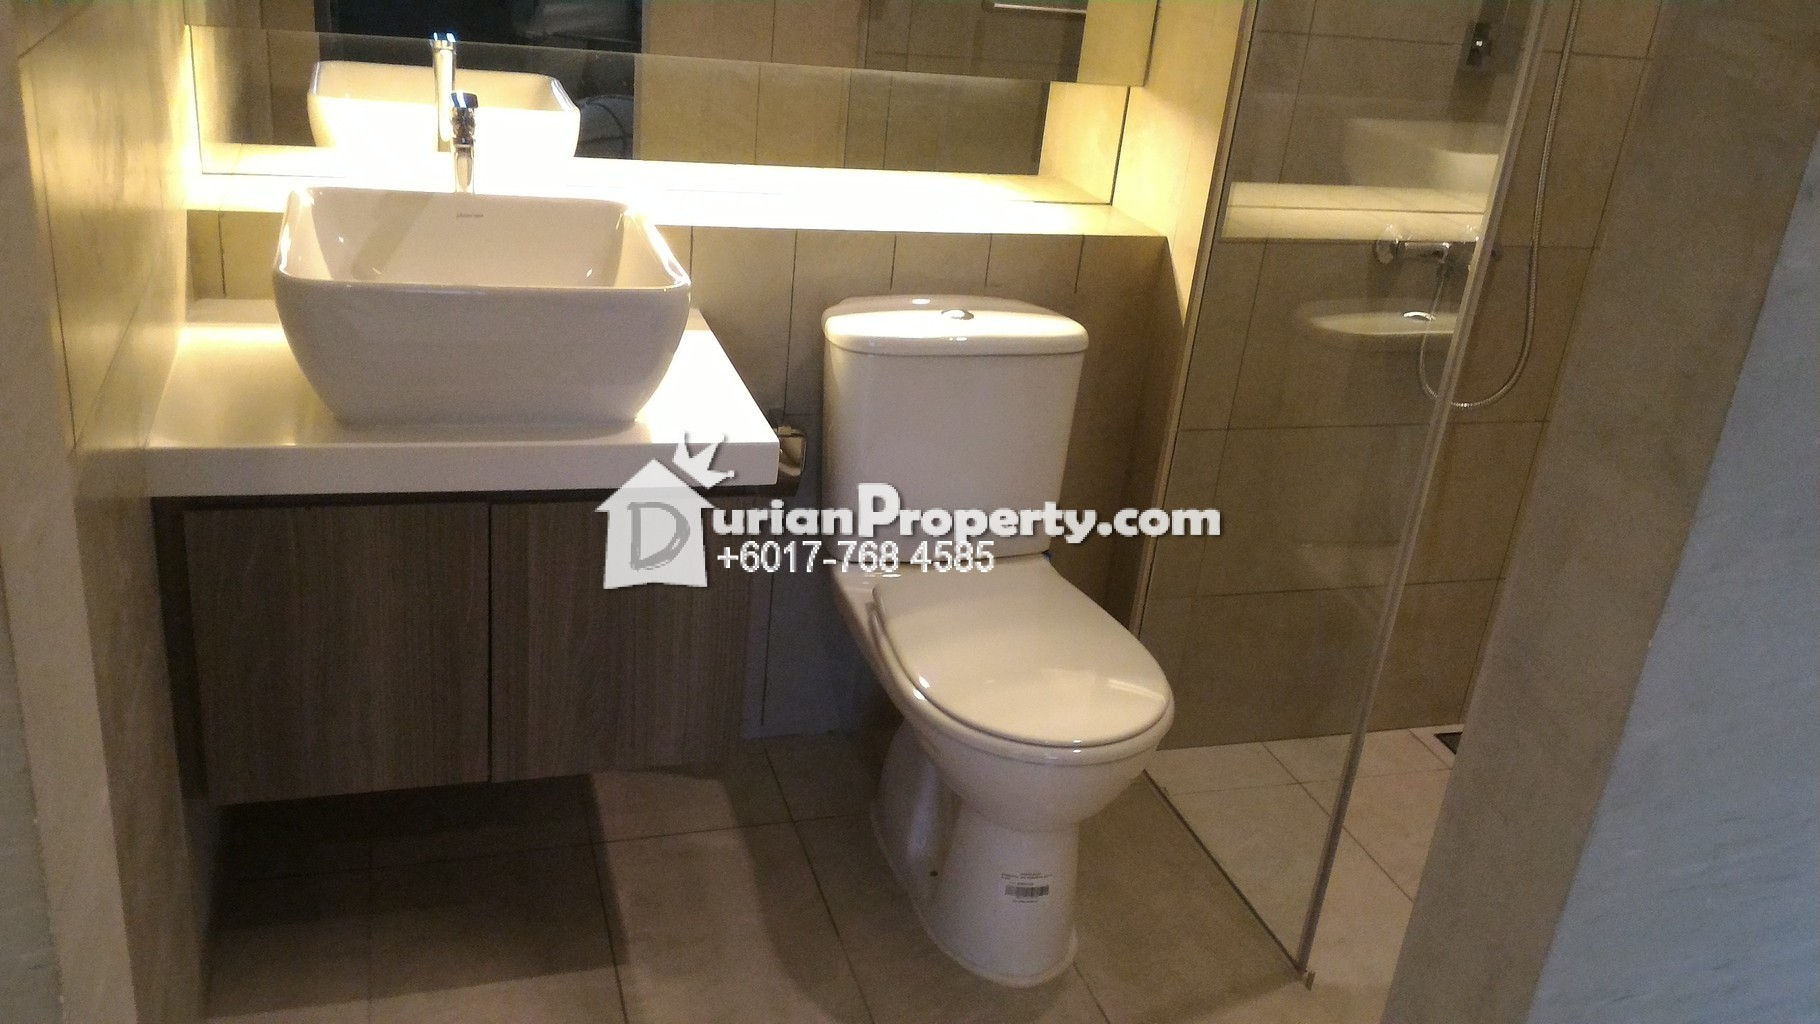 Bathroom Accessories Johor apartment for sale at 8scape, johor bahru for rm 630,000